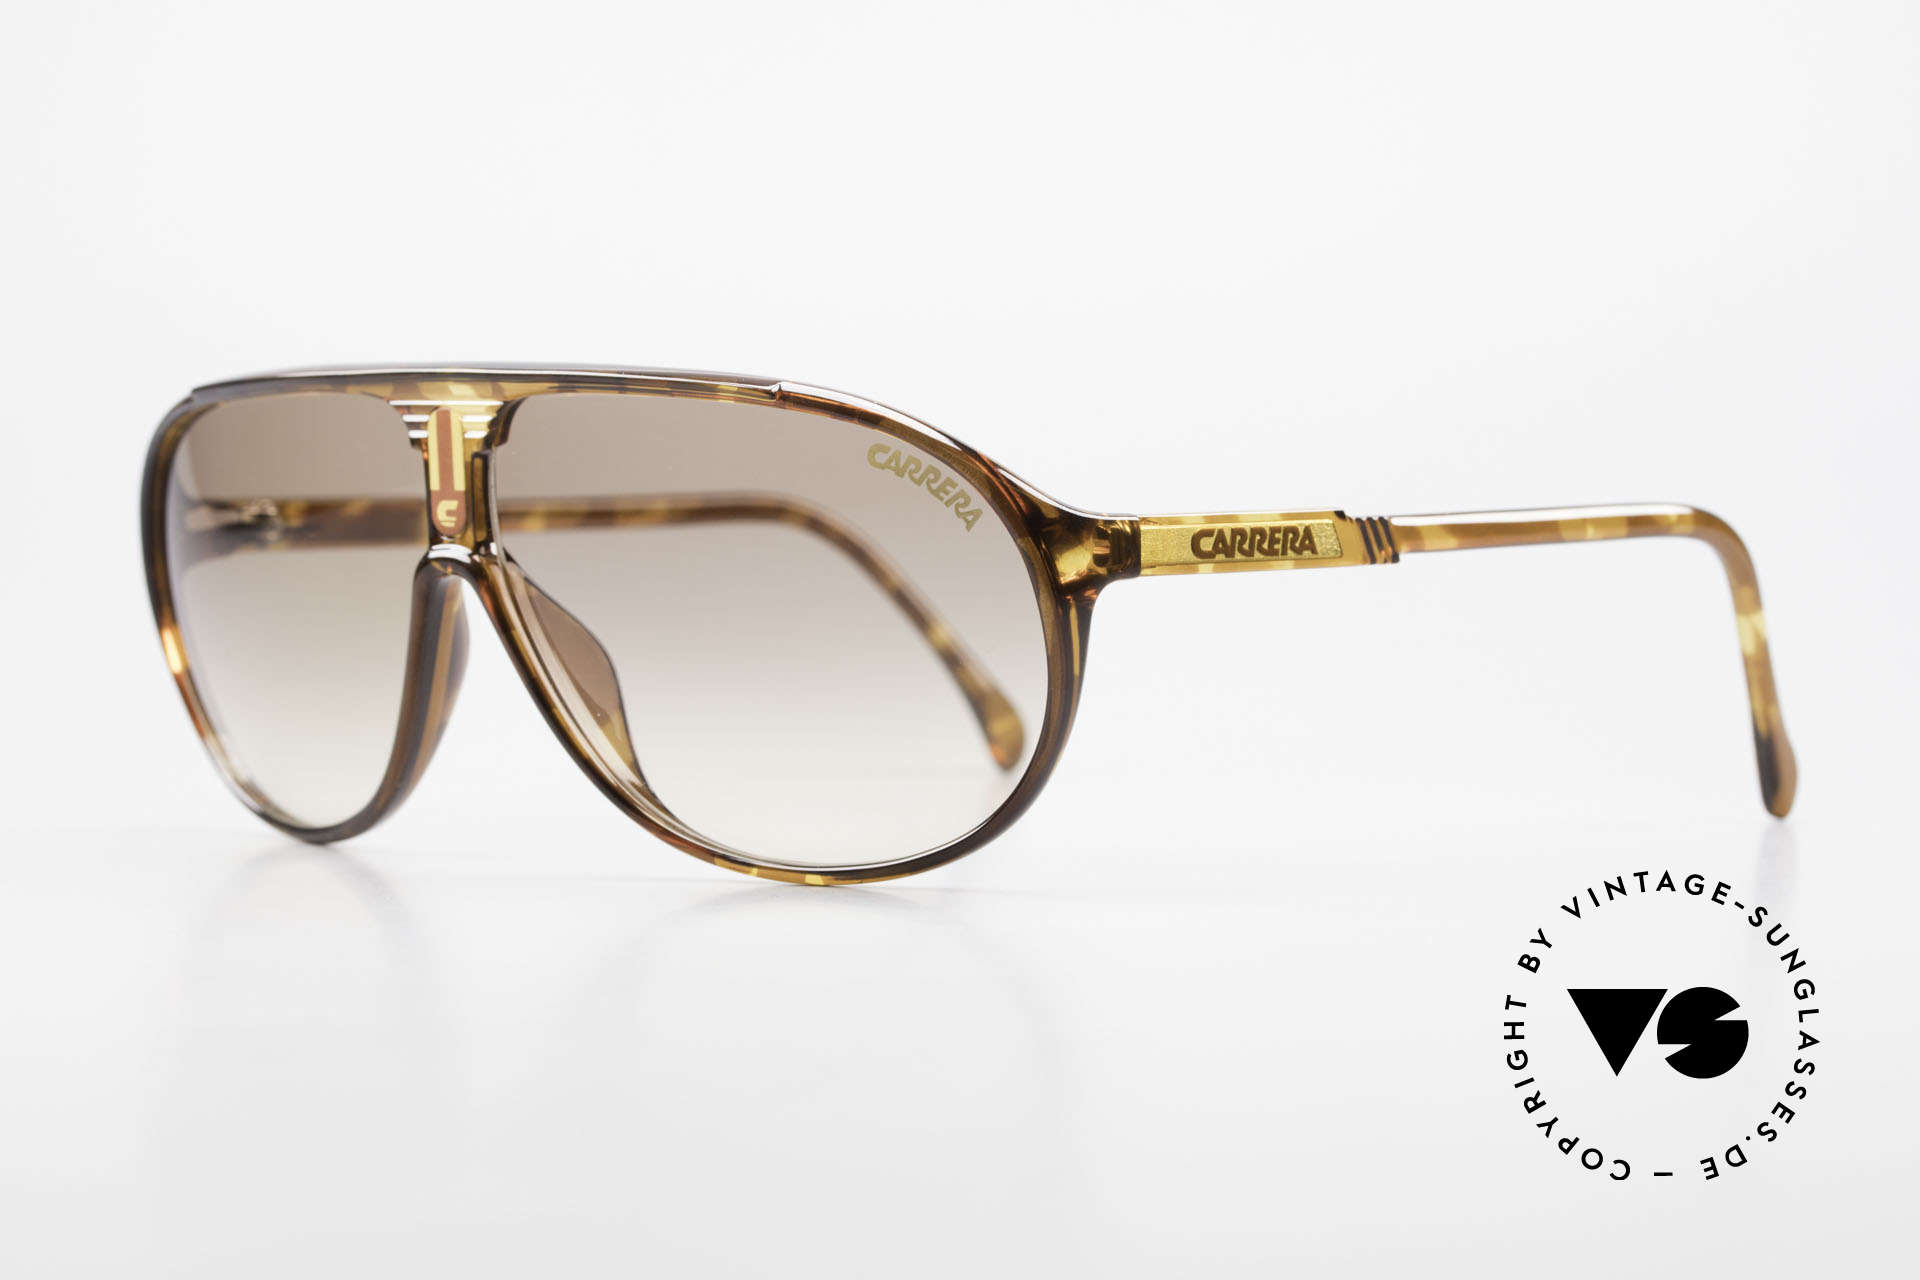 Carrera 5412 Optyl Sunglasses 80's Sport, orig. catalog name: Carrera 5412 Cup Sport Performance, Made for Men and Women